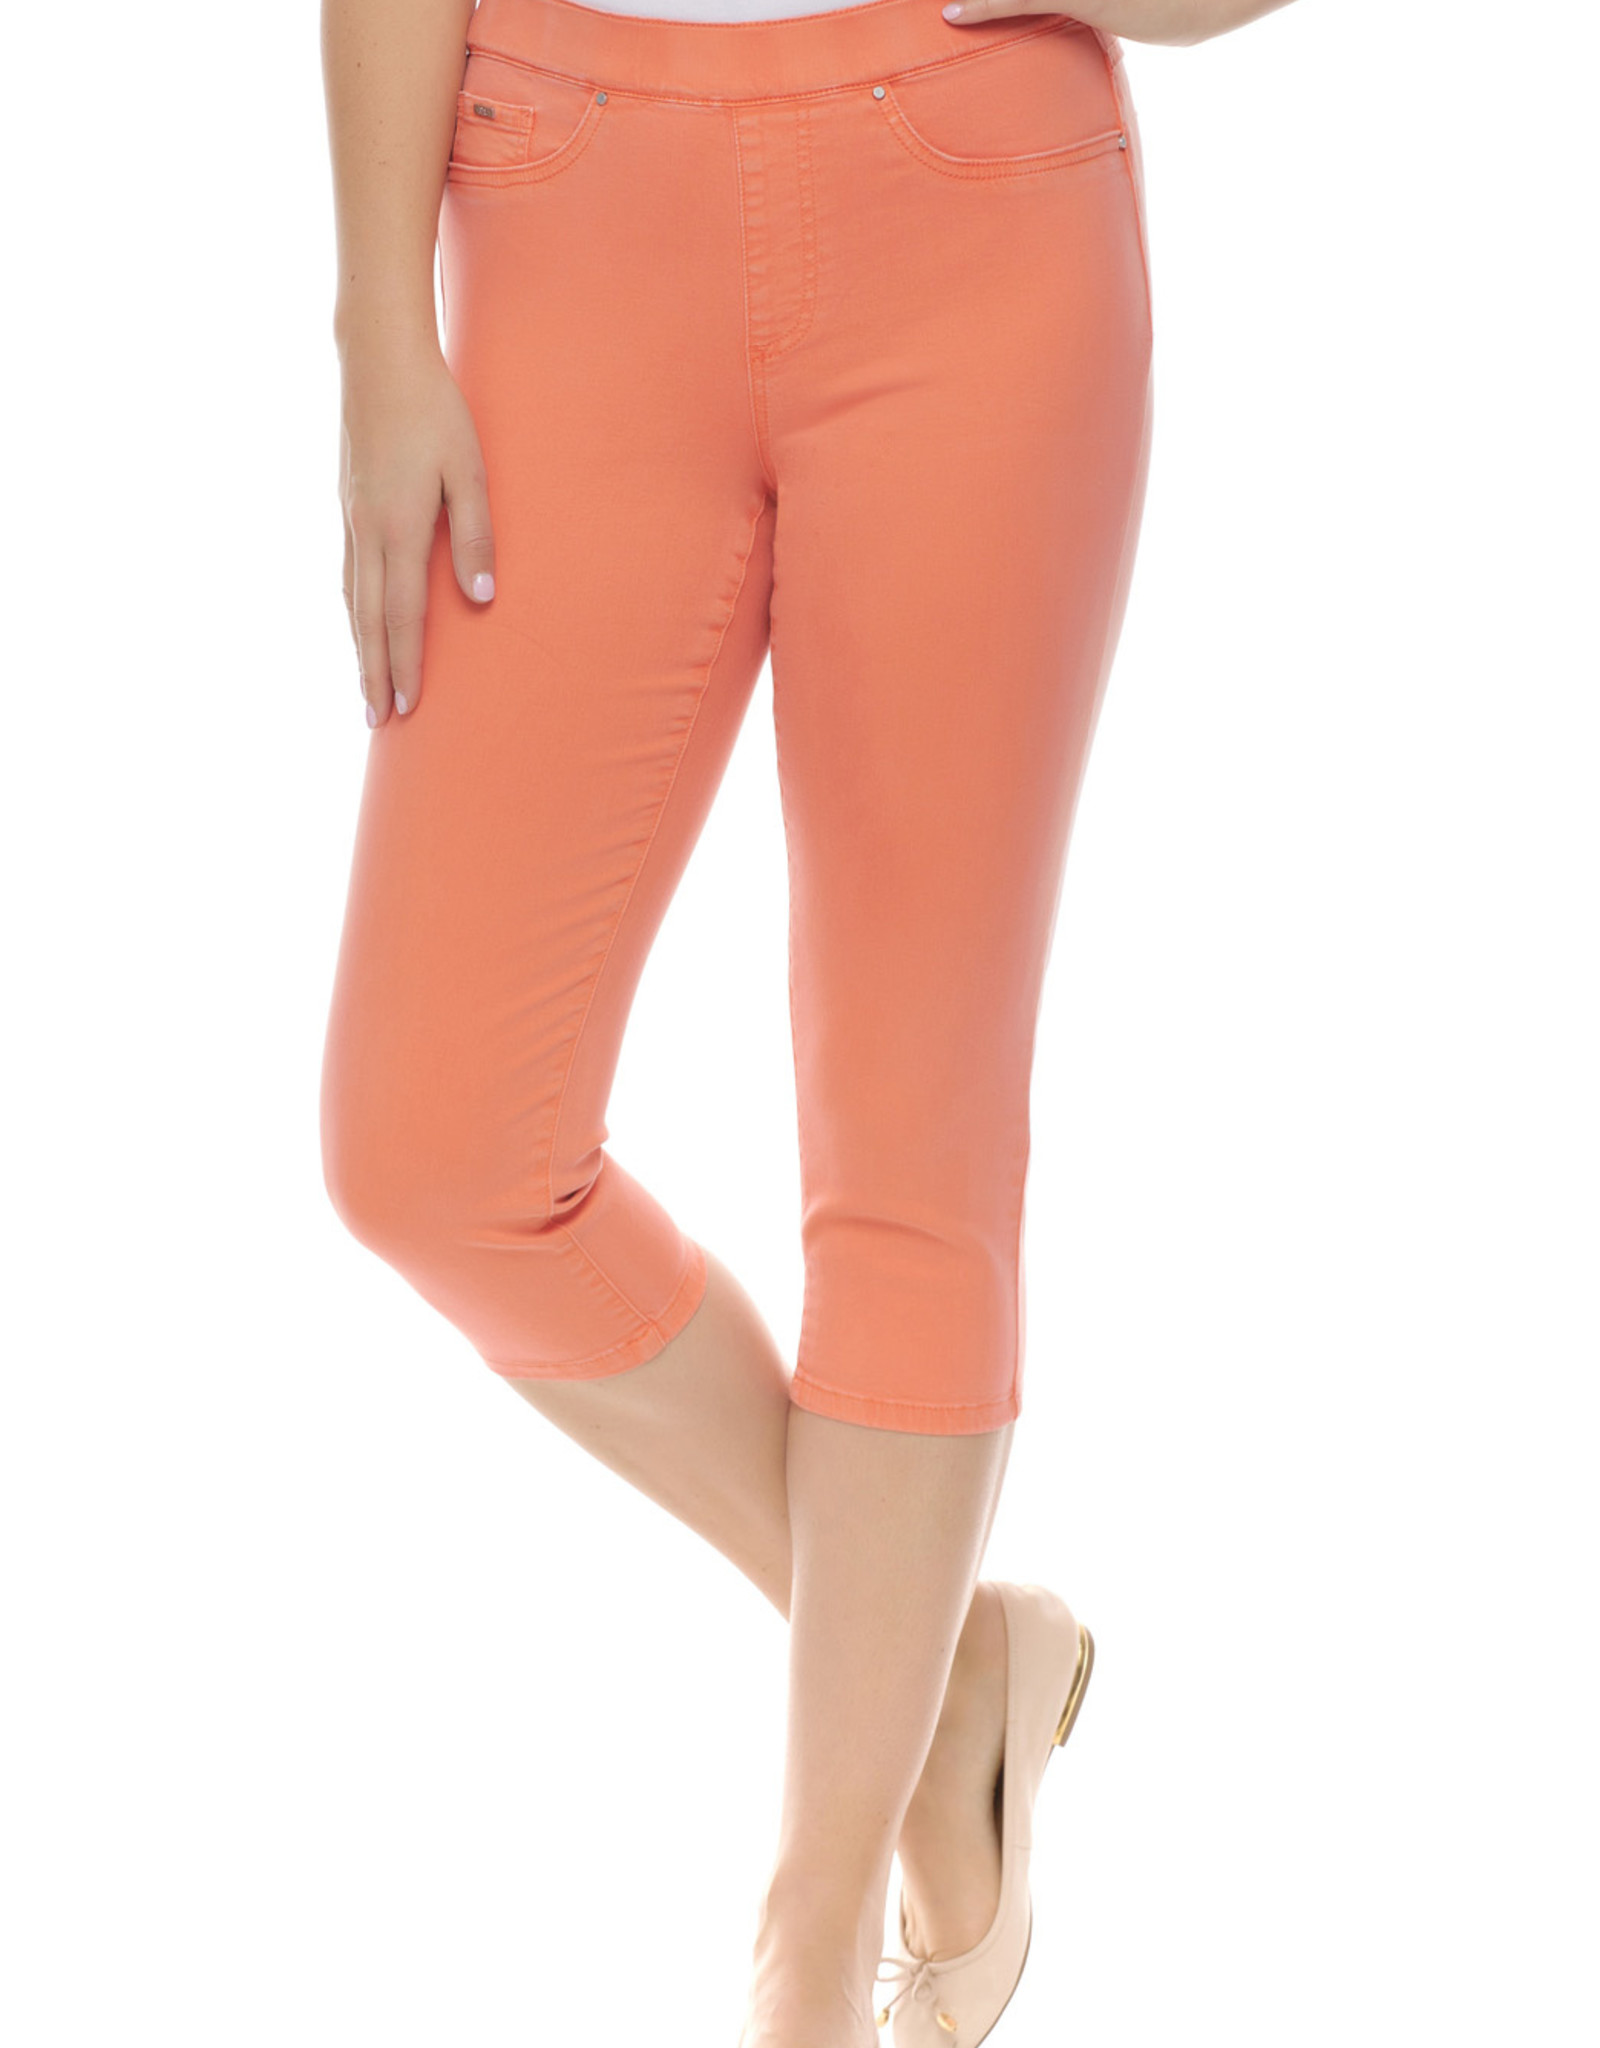 French Dressing Jeans French Dressing Pull-On Capri 2957511